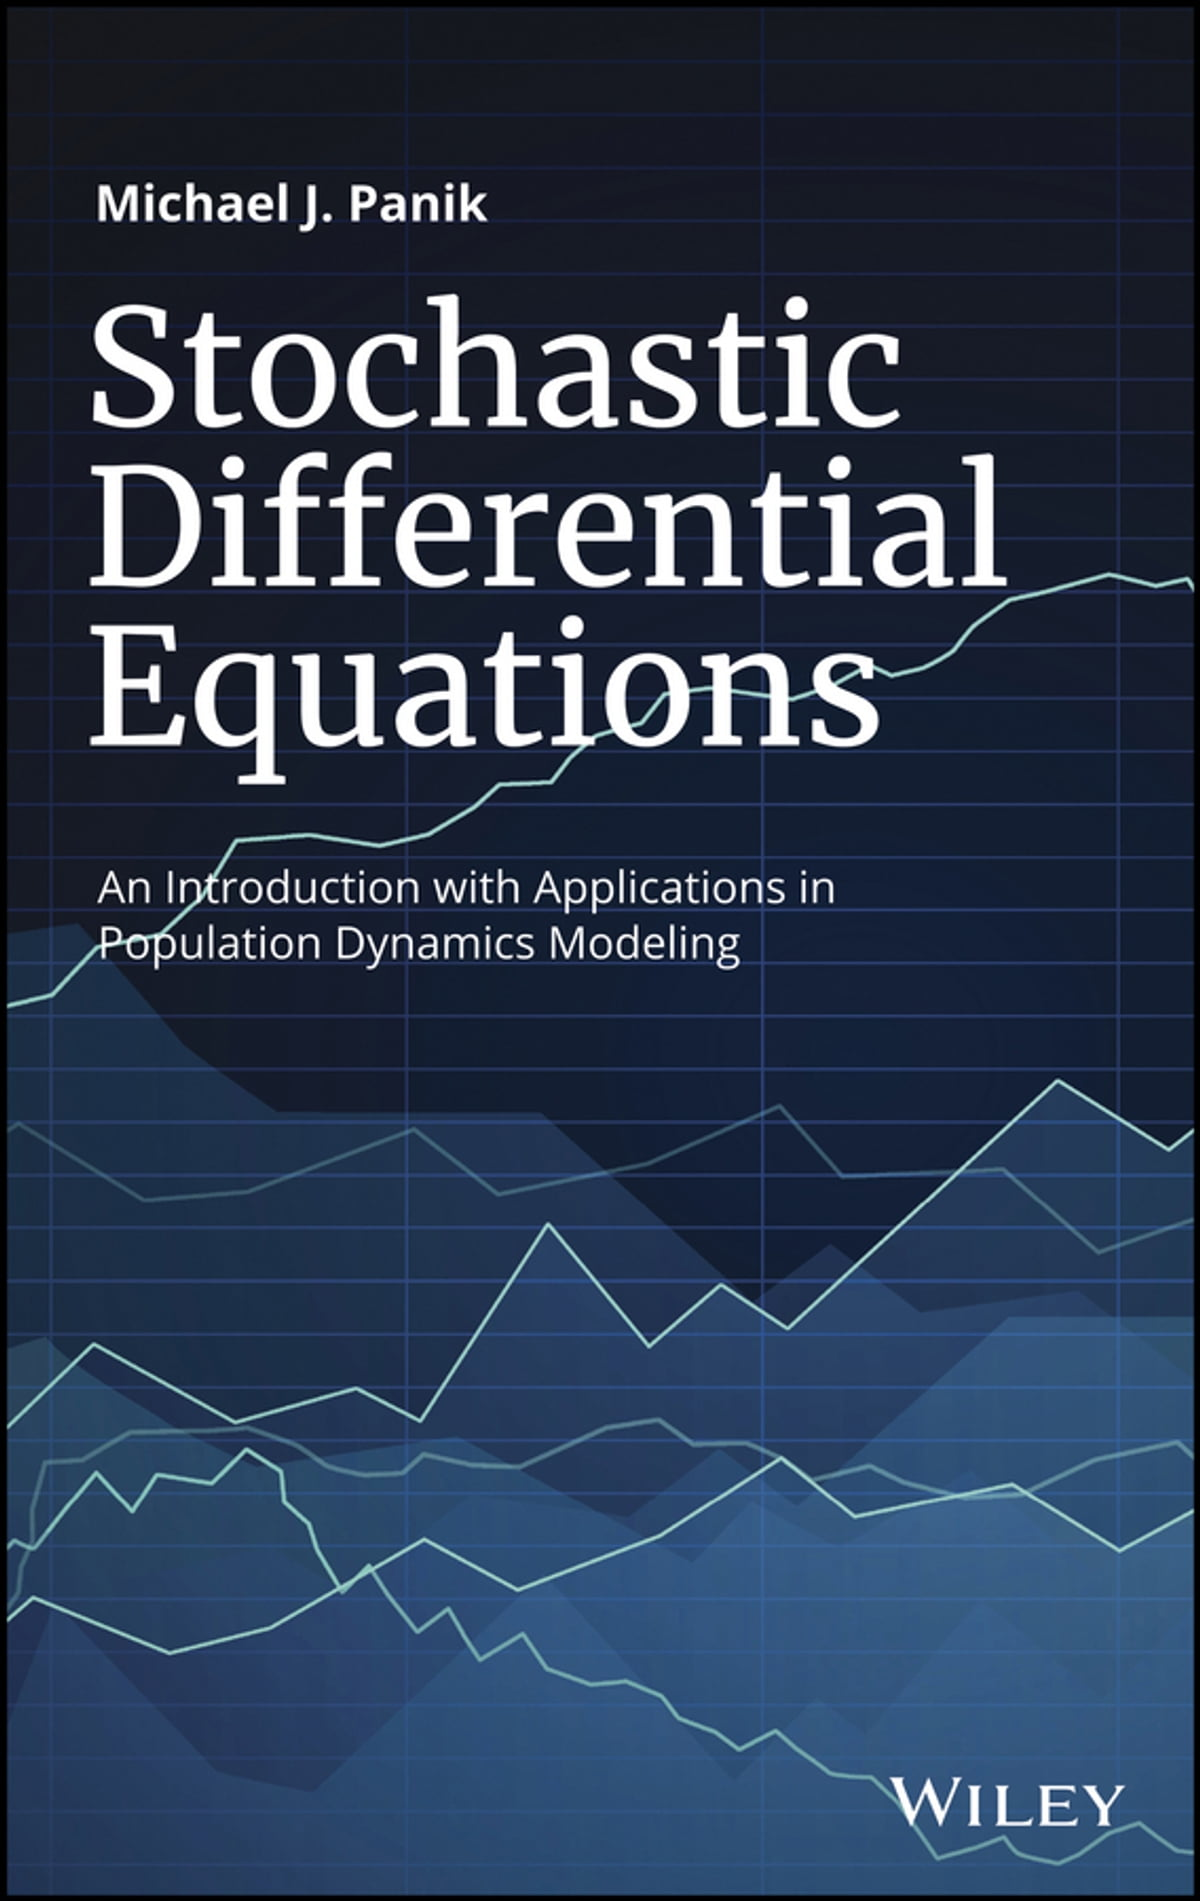 Stochastic differential equations ebook by michael j panik stochastic differential equations ebook by michael j panik 9781119377405 rakuten kobo fandeluxe Images